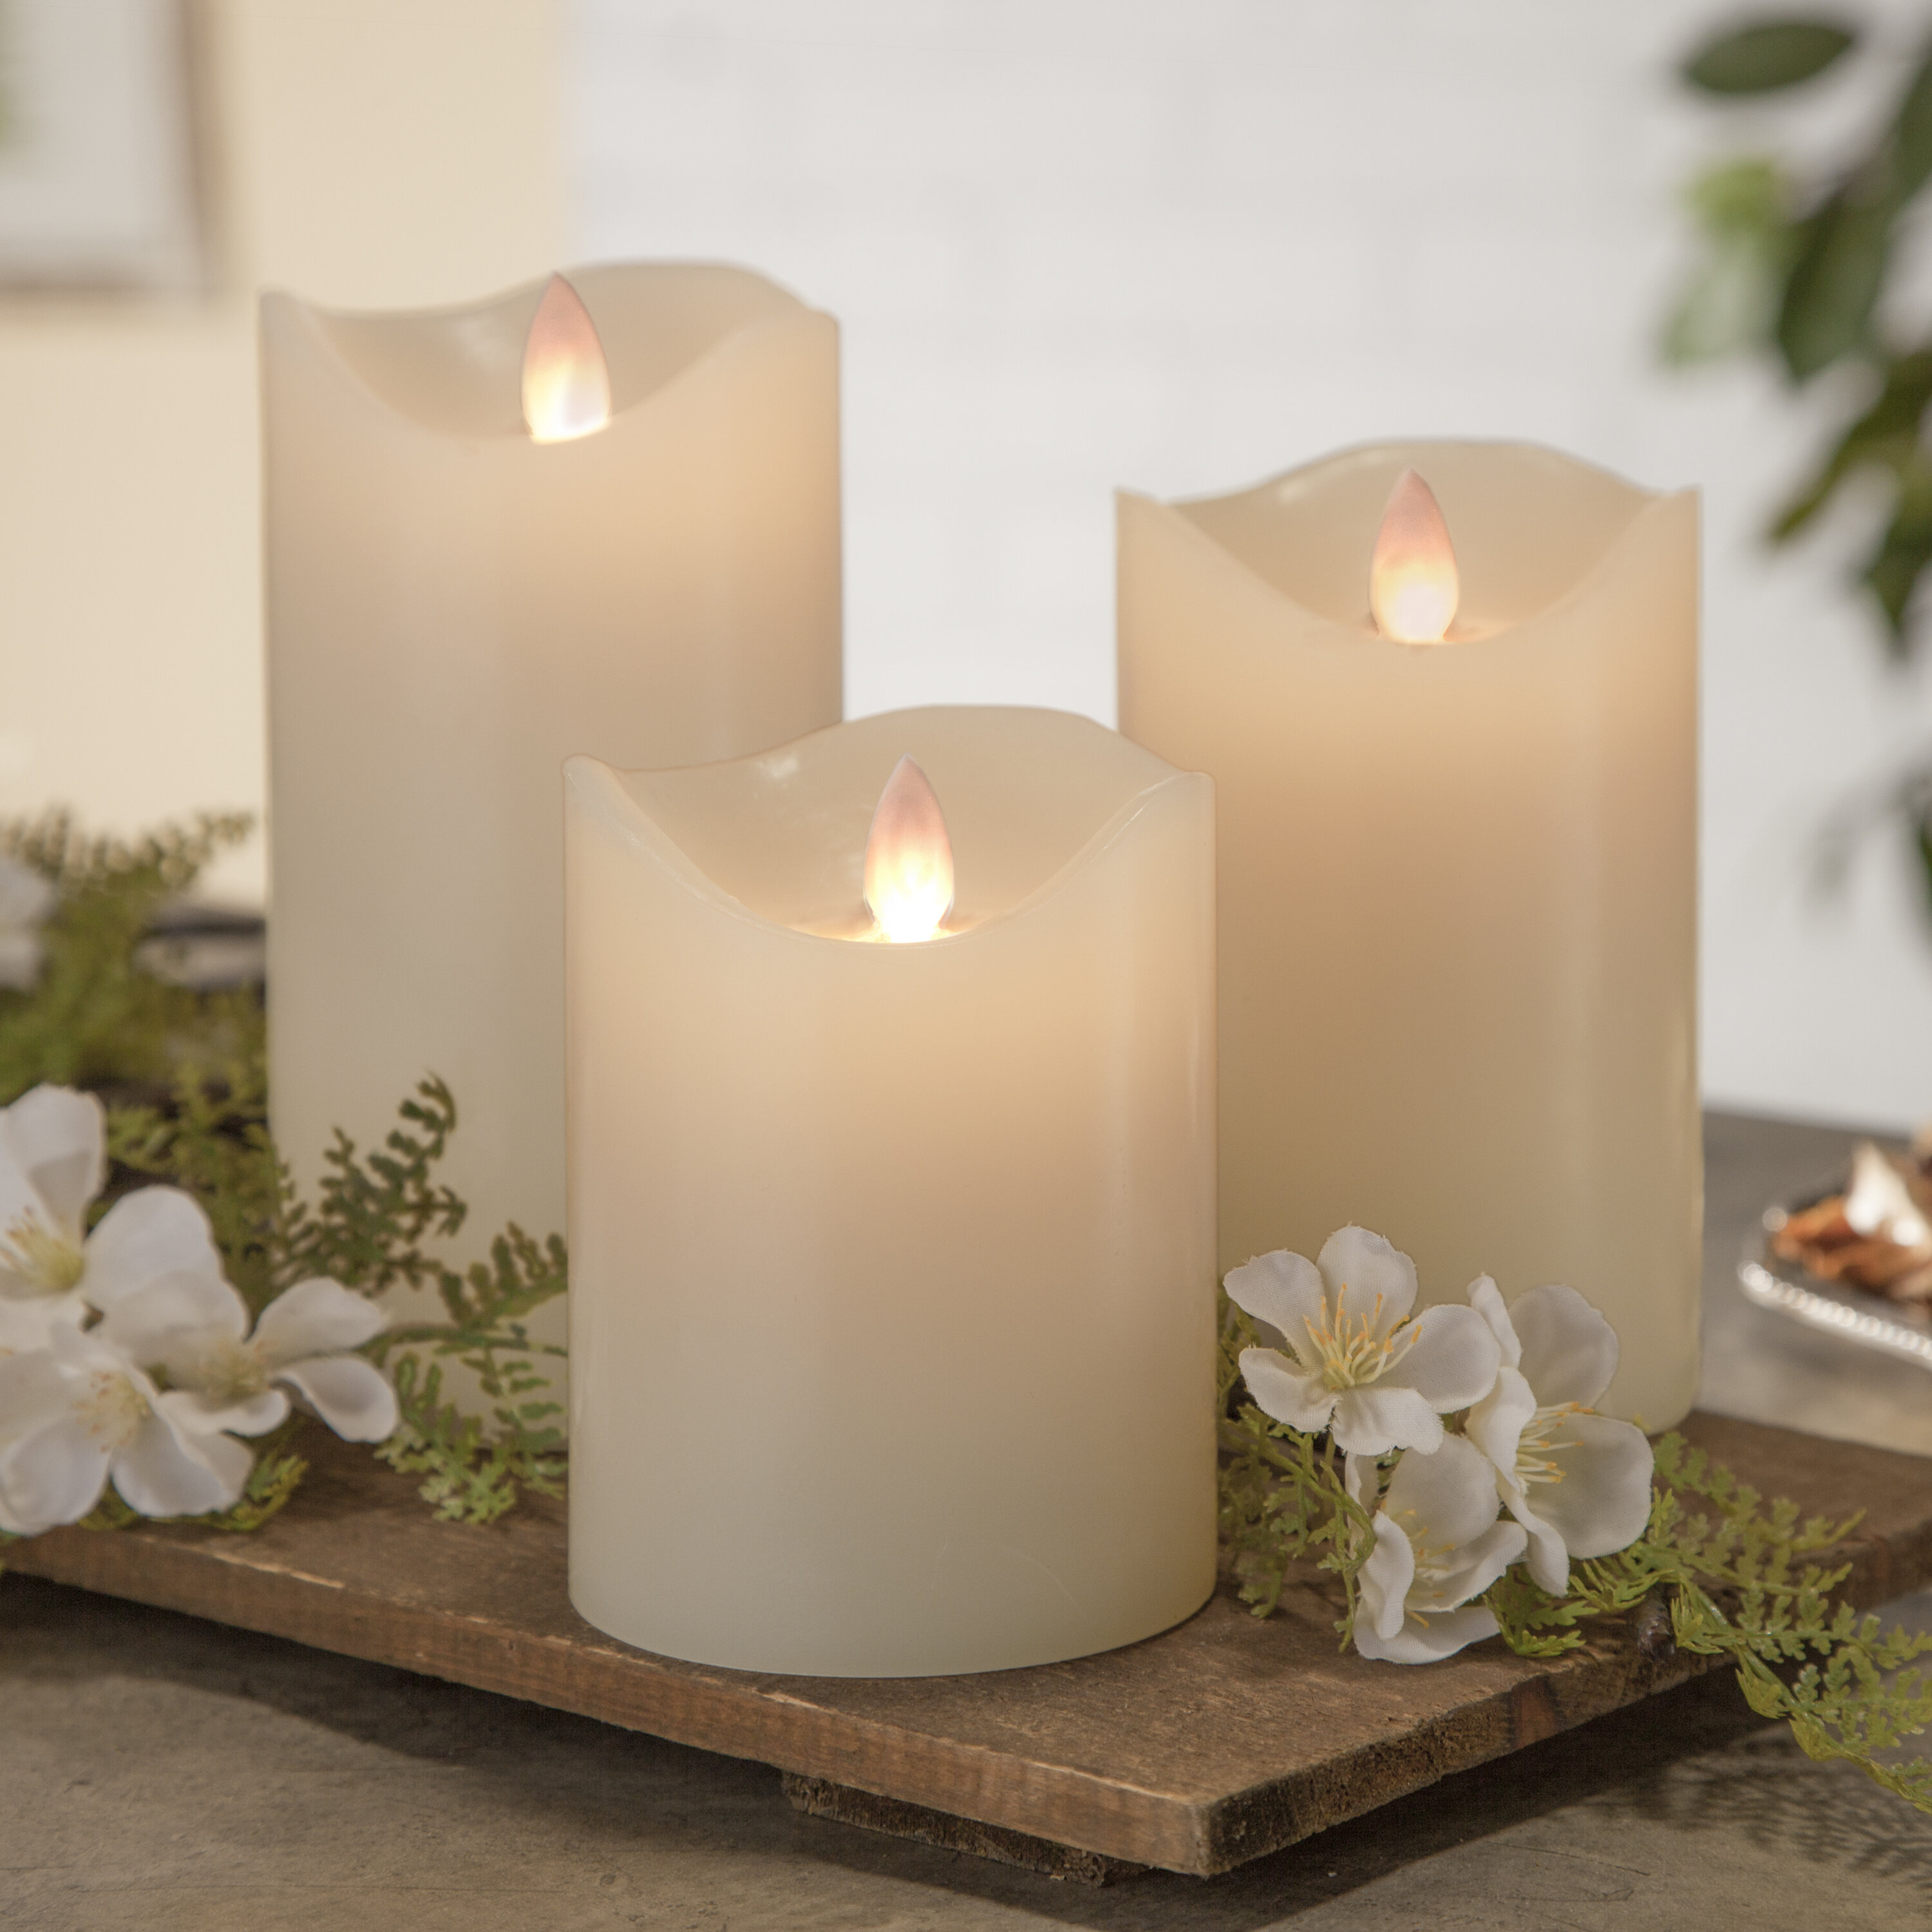 Root Candles Advent Candle Set 4-Count